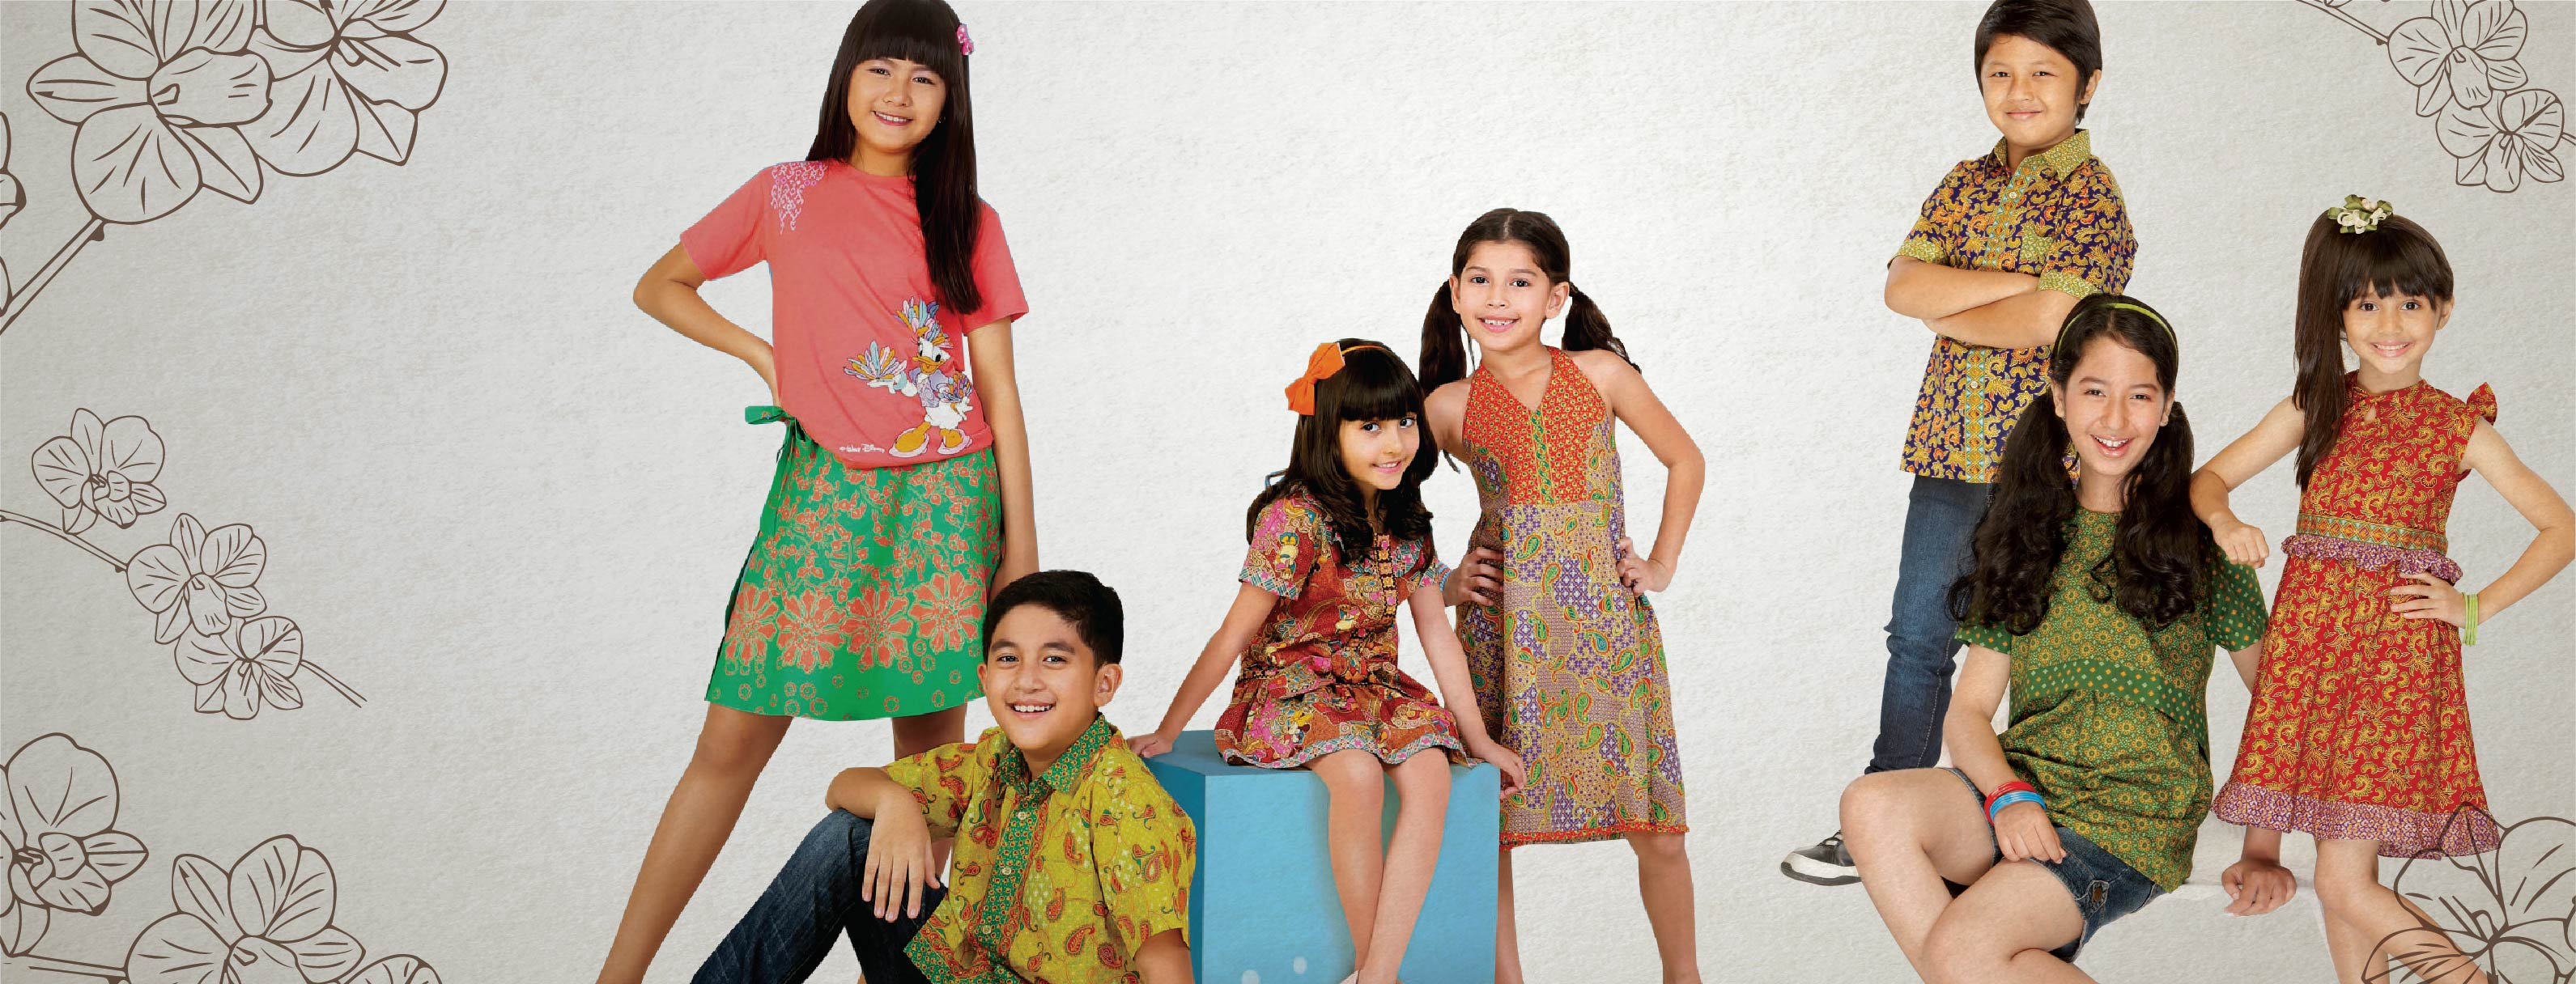 Buy Baju Anak Deals For Only Rp90 000 Instead Of Rp90 000